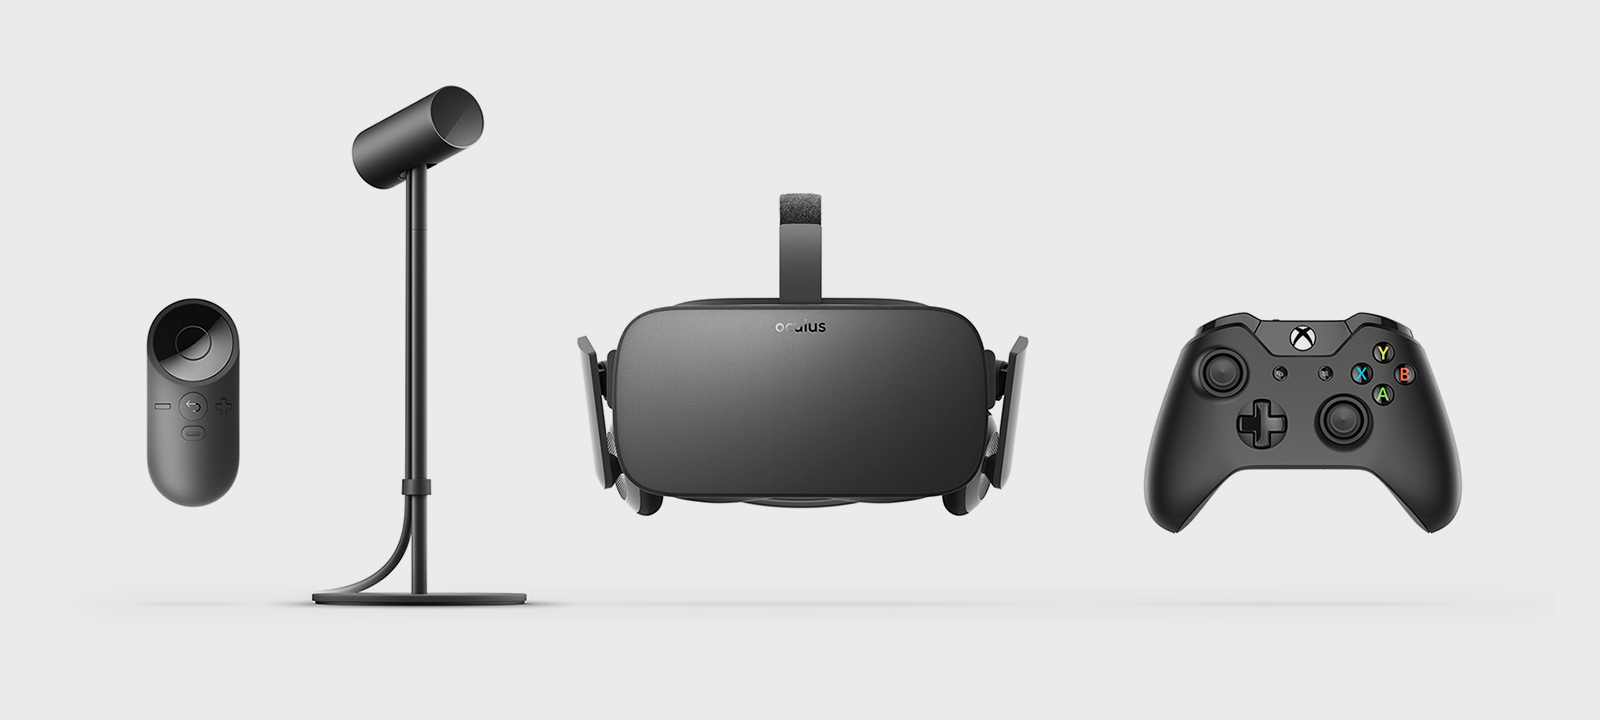 Oculus Rift, Oculus, virtual reality